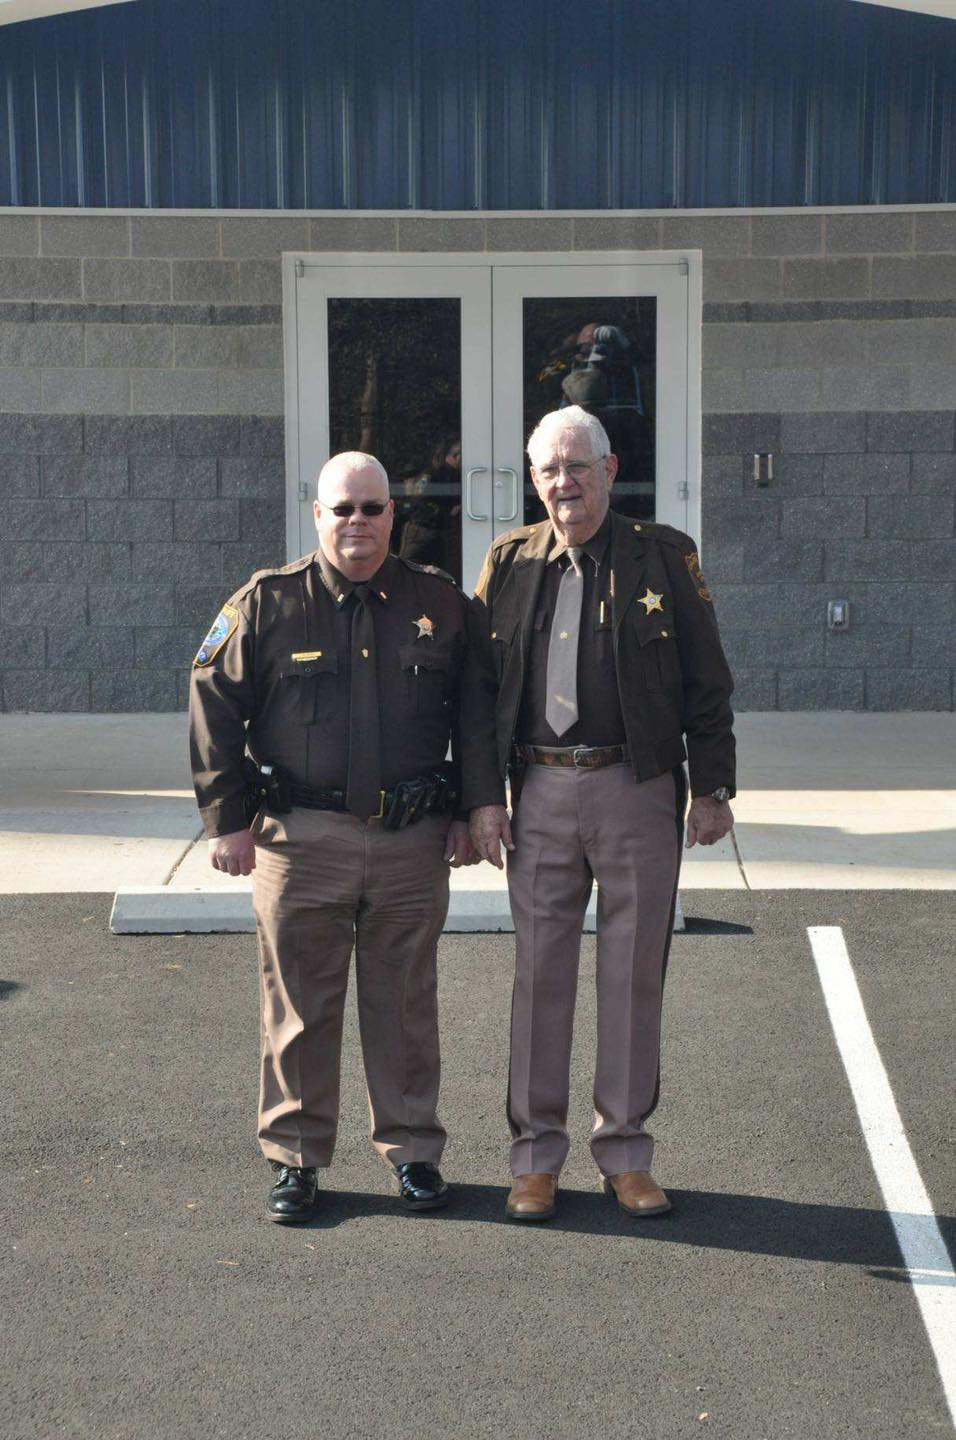 Captain James Anthony Sisk | Culpeper County Sheriff's Office, Virginia